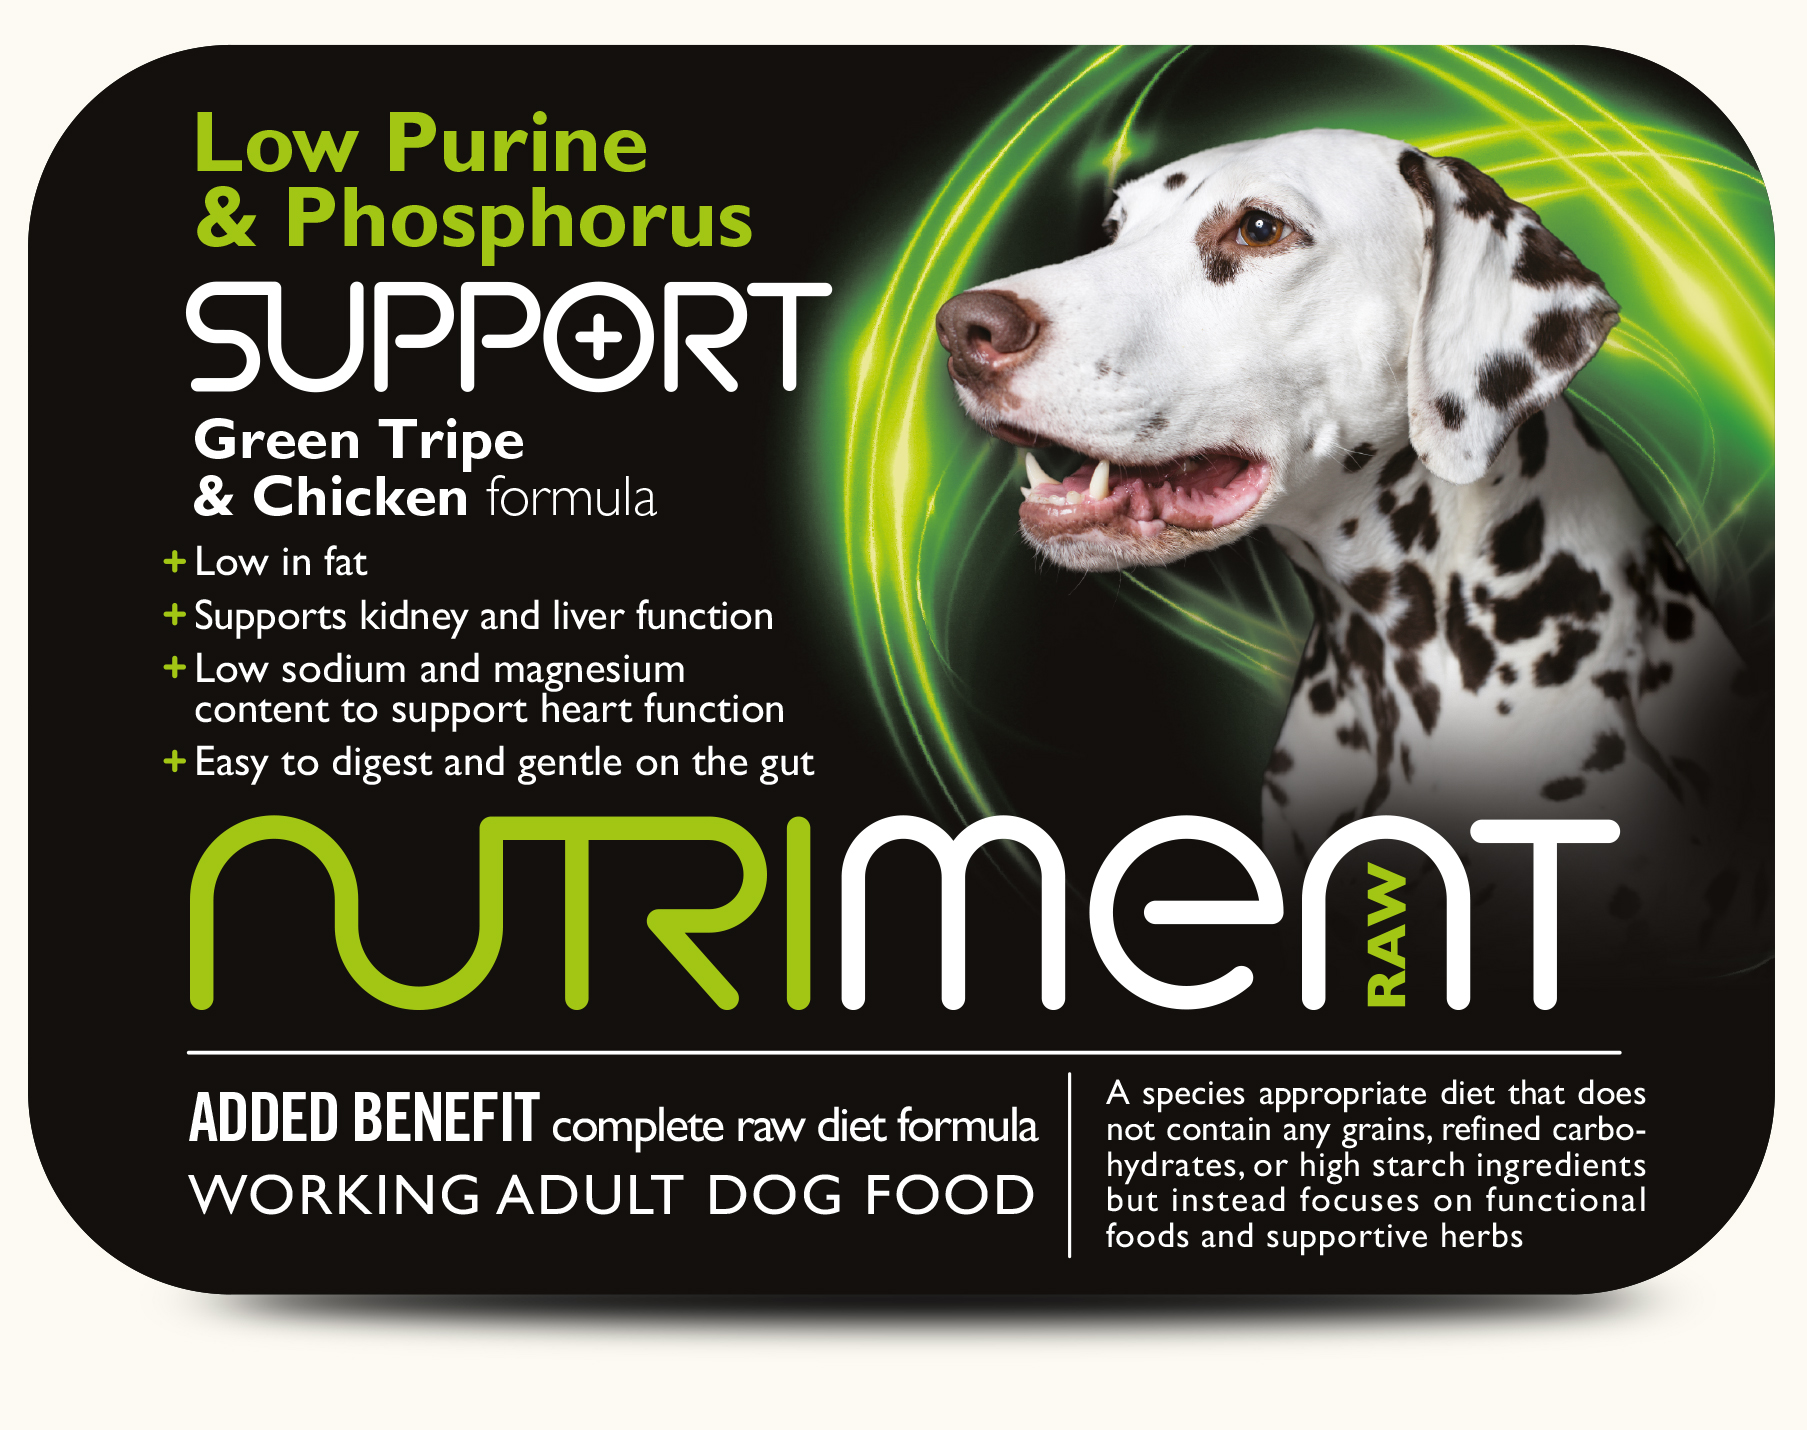 Nutriment reinforces its position as lead innovator in the marketplace with expansions to the portfolio and brand.